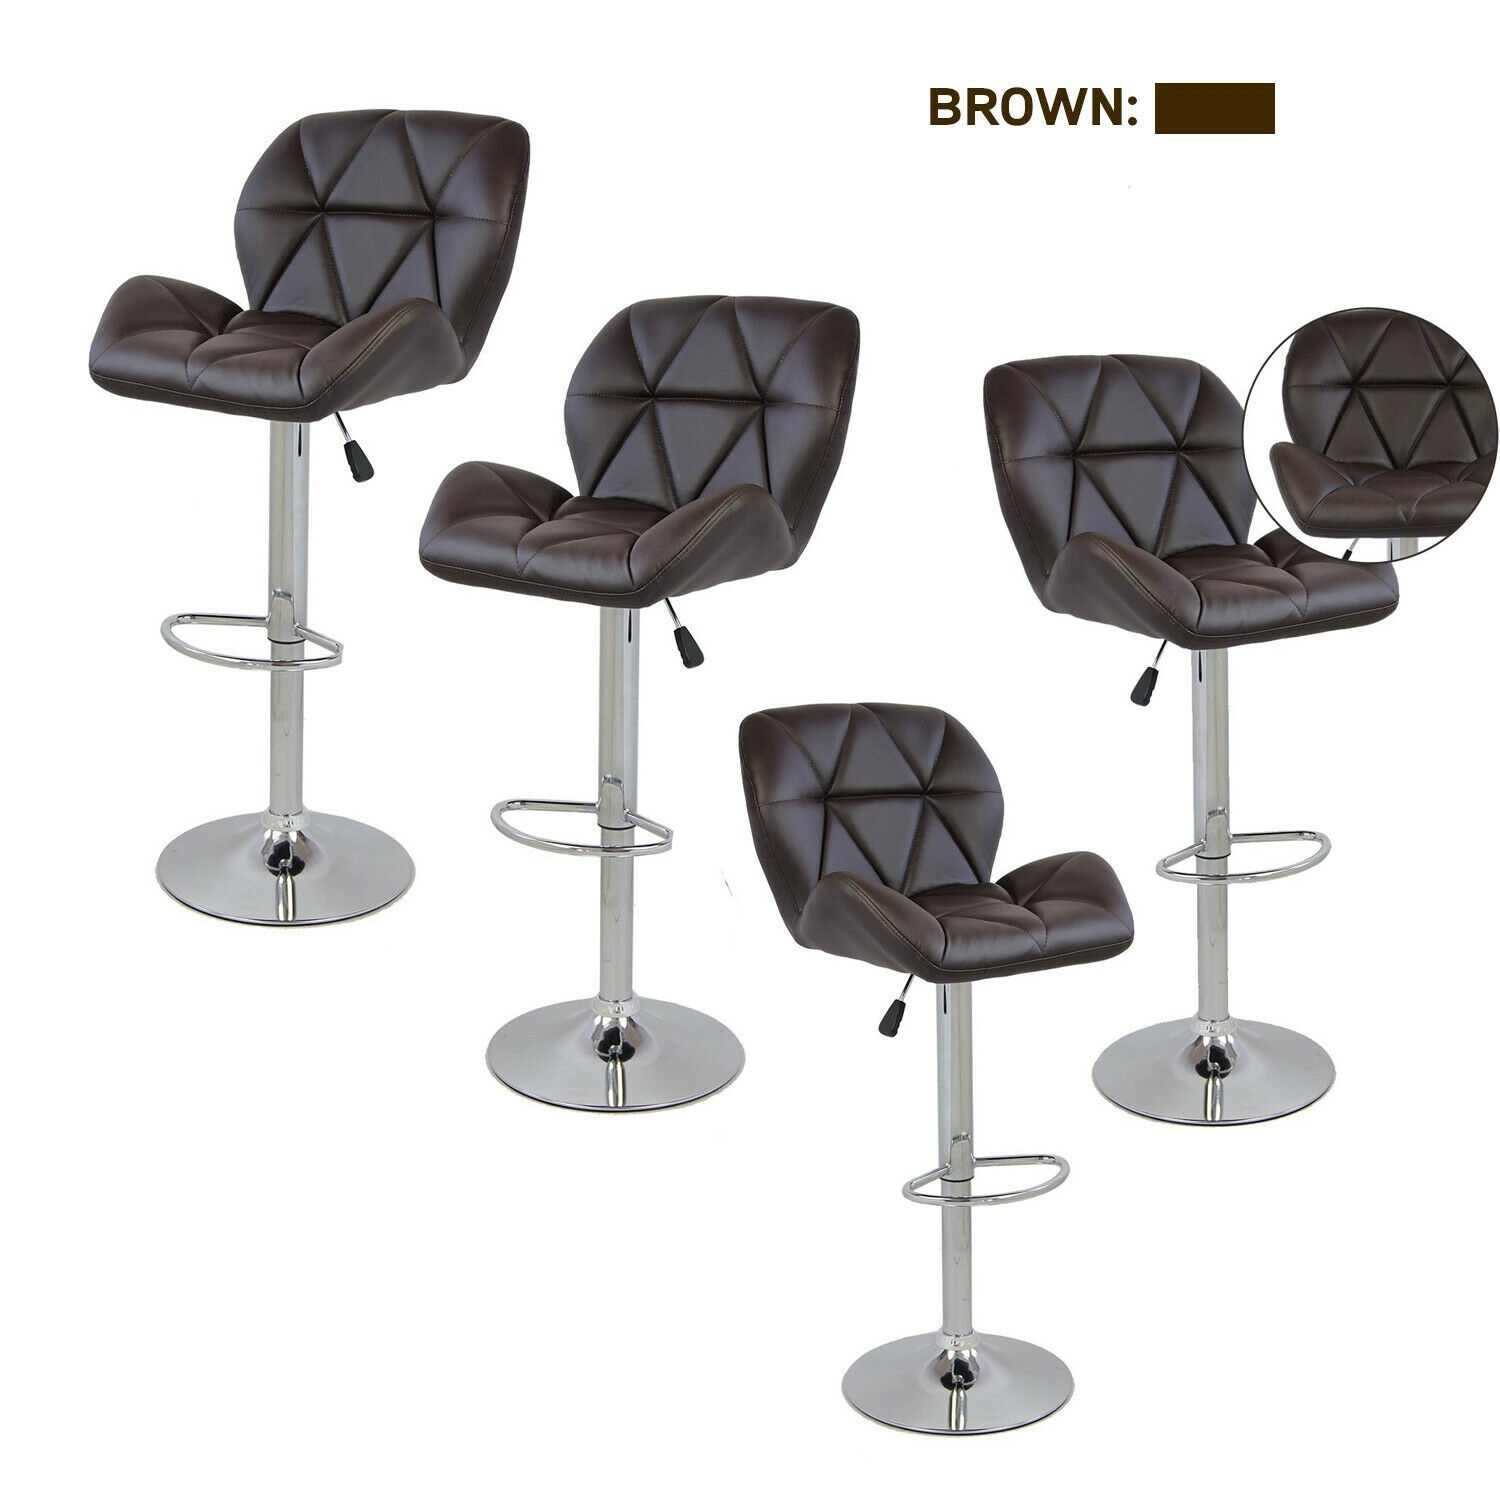 Set Of 4 Adjustable Bar Stools Pu Leather Countertop Swivel Chair Dining Bistro Aliexpress